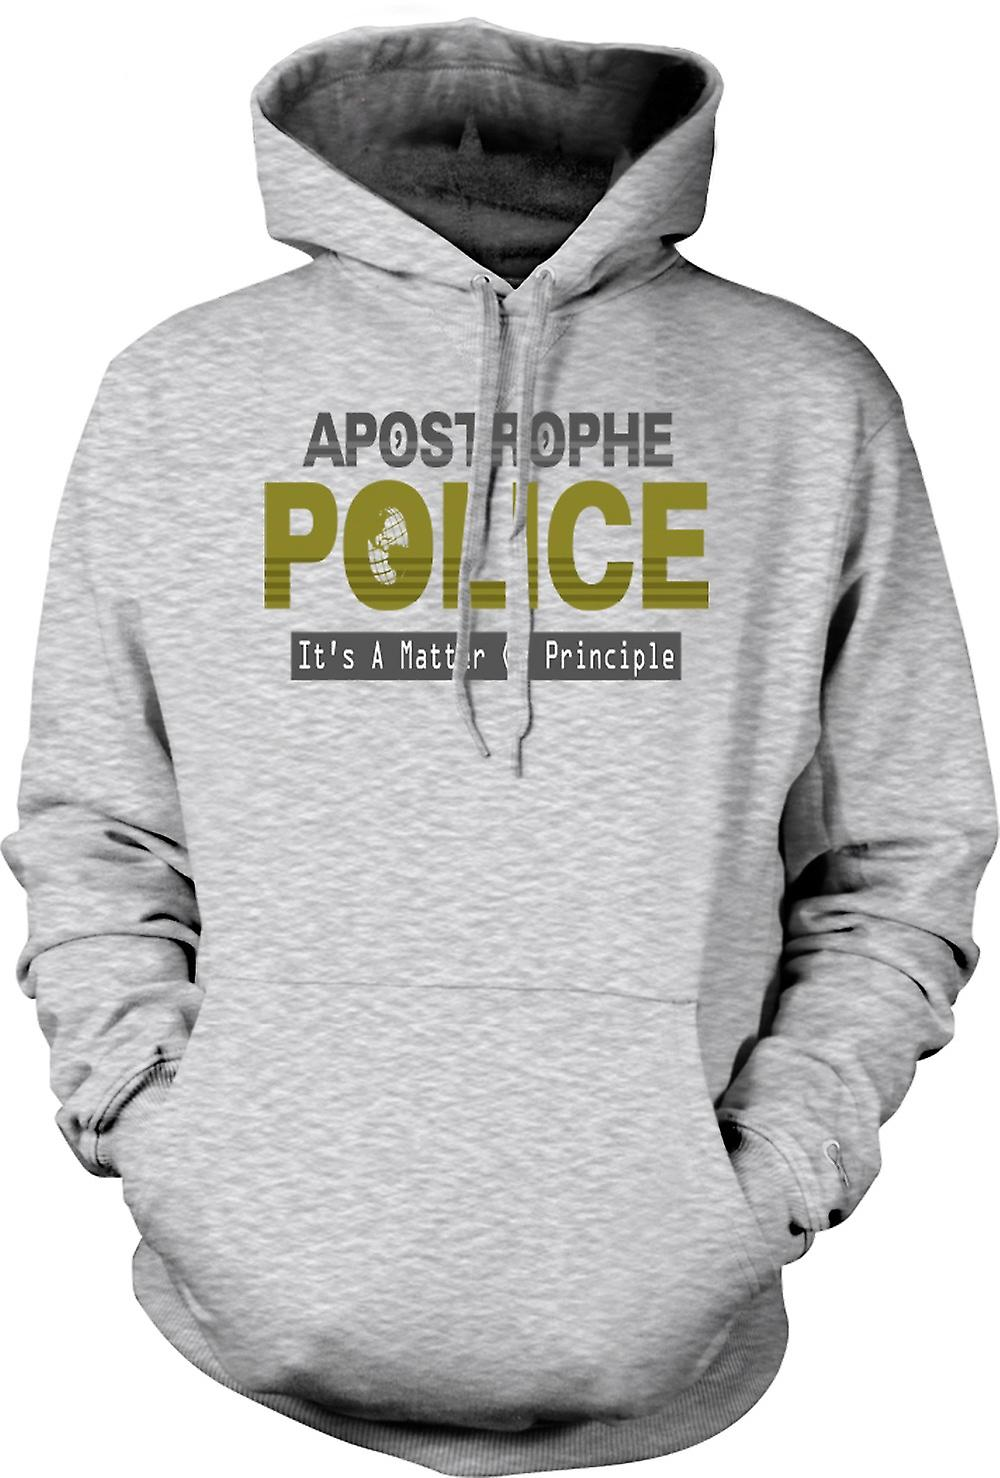 Mens Hoodie - Apostrophe Police - Funny